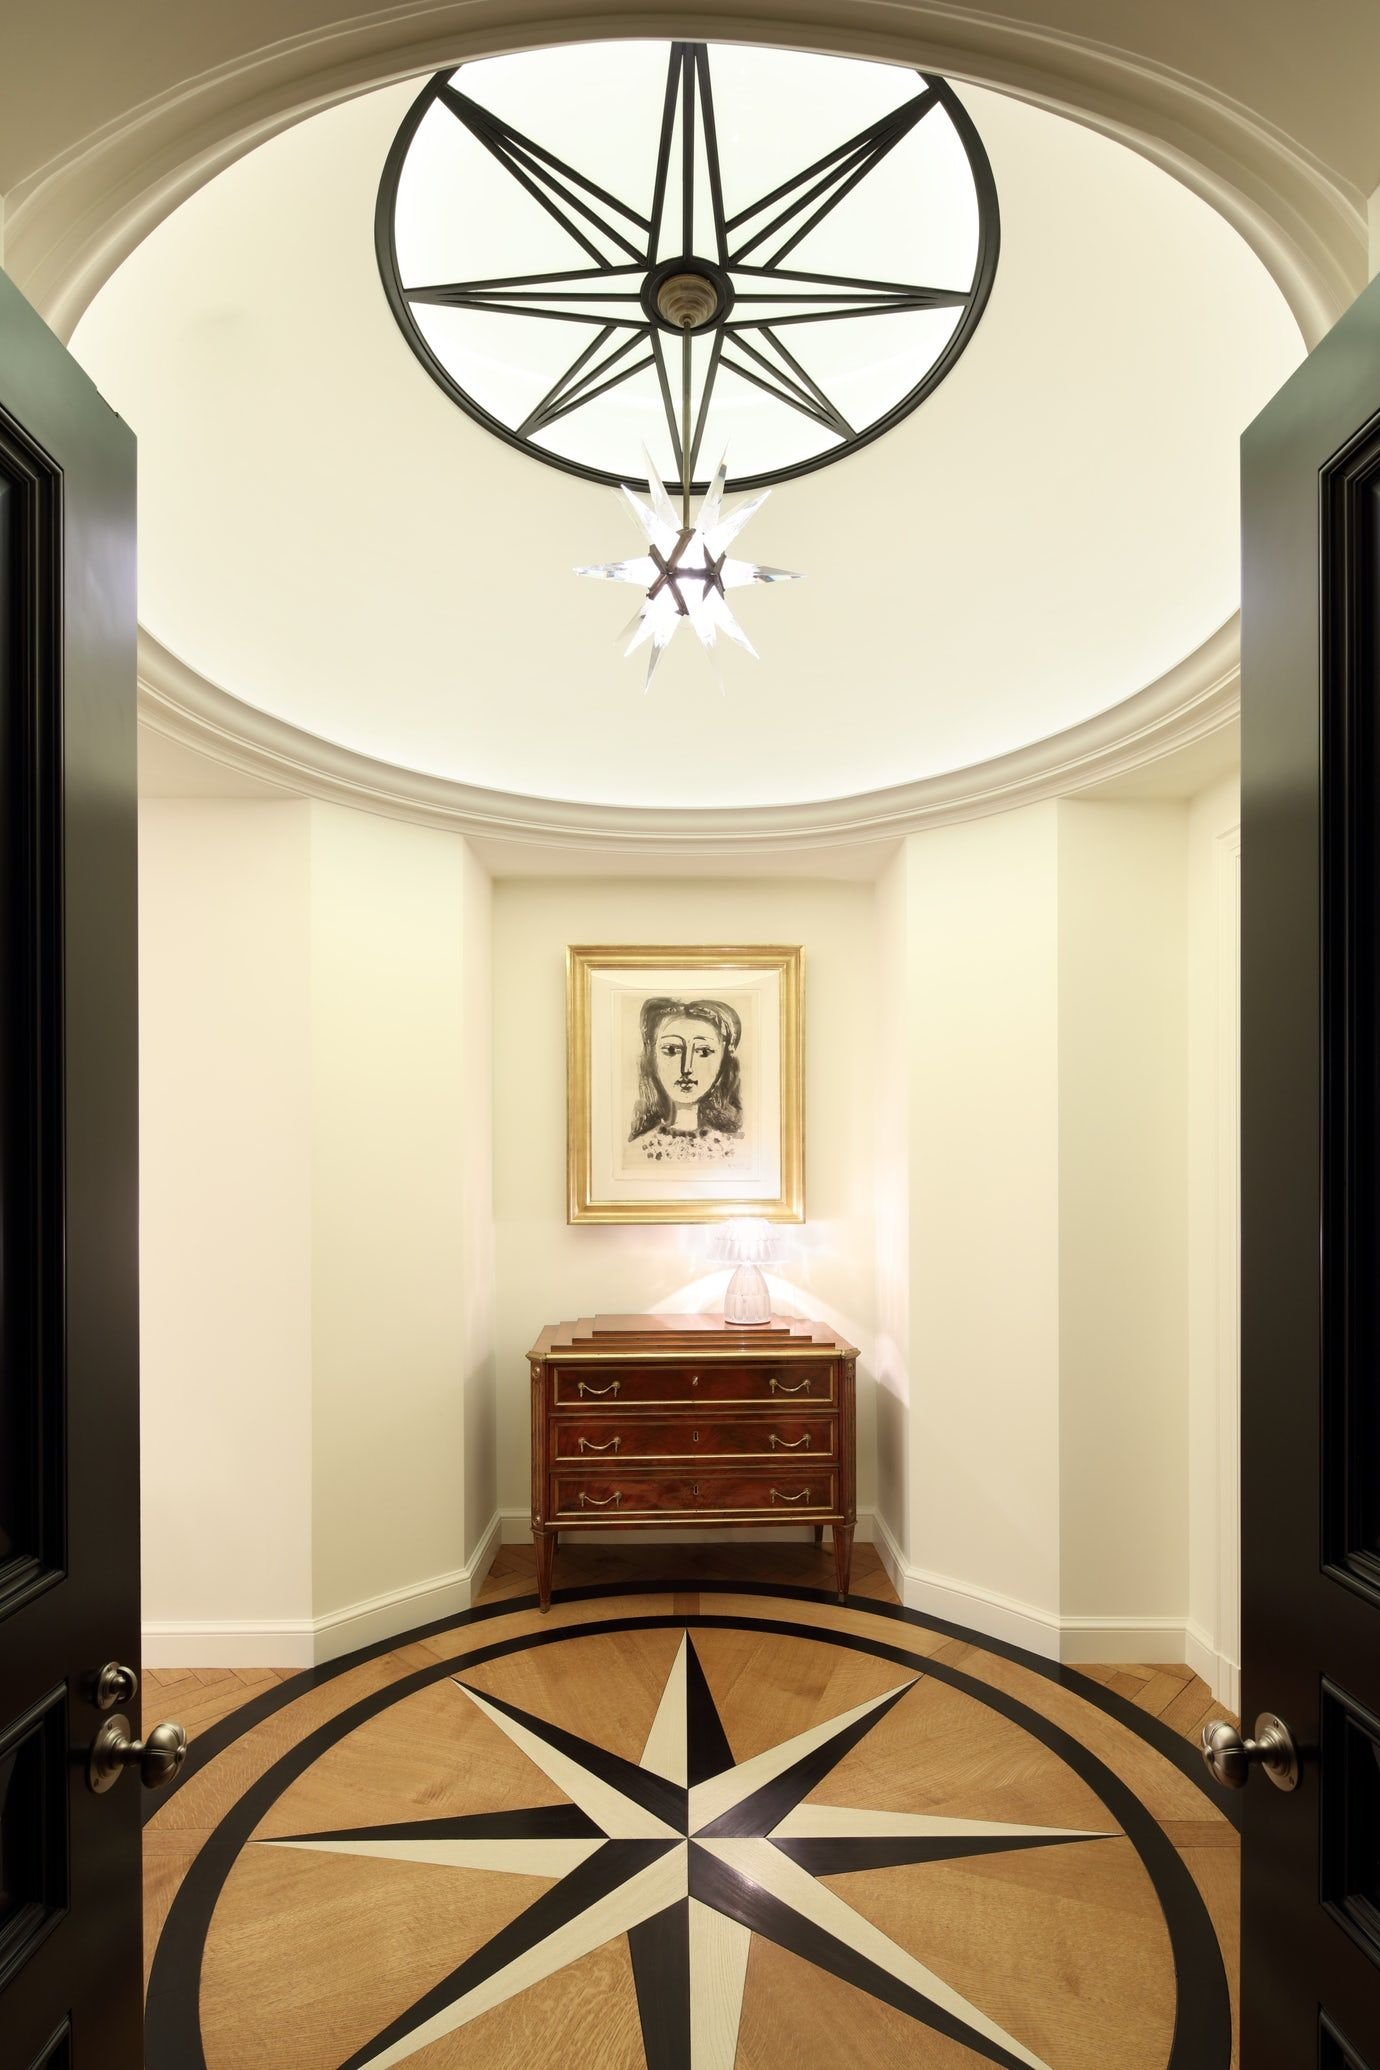 Art deco hallway lights  French Revival Beverly Hills Hallway Architectural Detail Art Deco